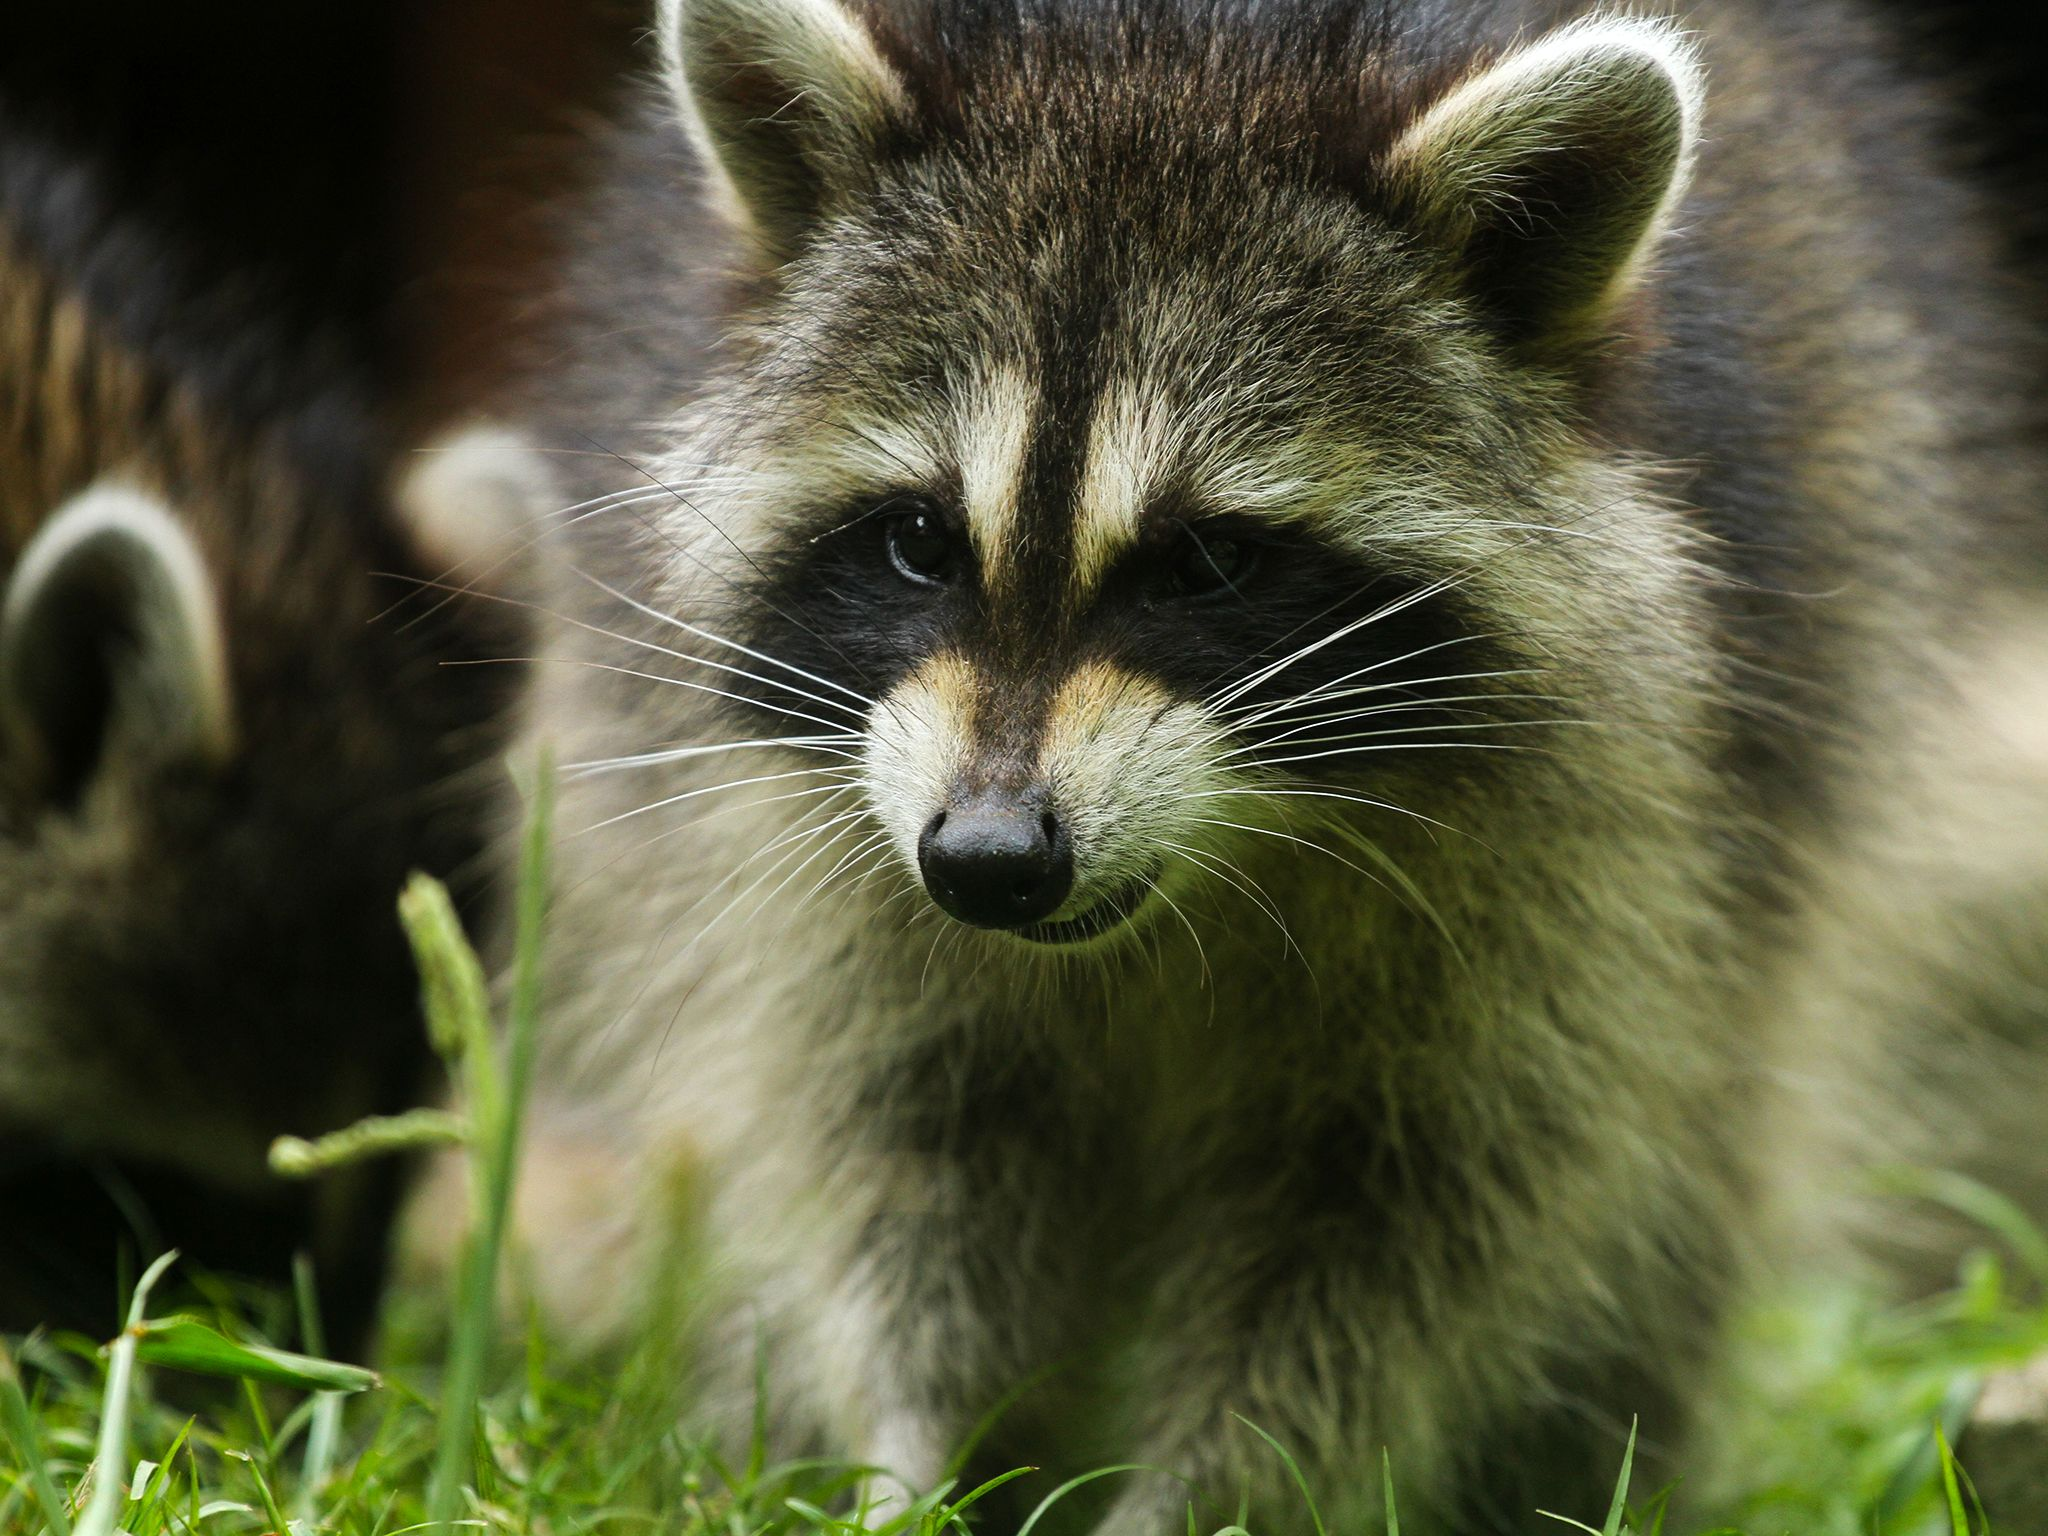 Washington, D.C.: A raccoon in the grass. This image is from Raccoon: Backyard Bandit. [Photo of the day - January 2015]